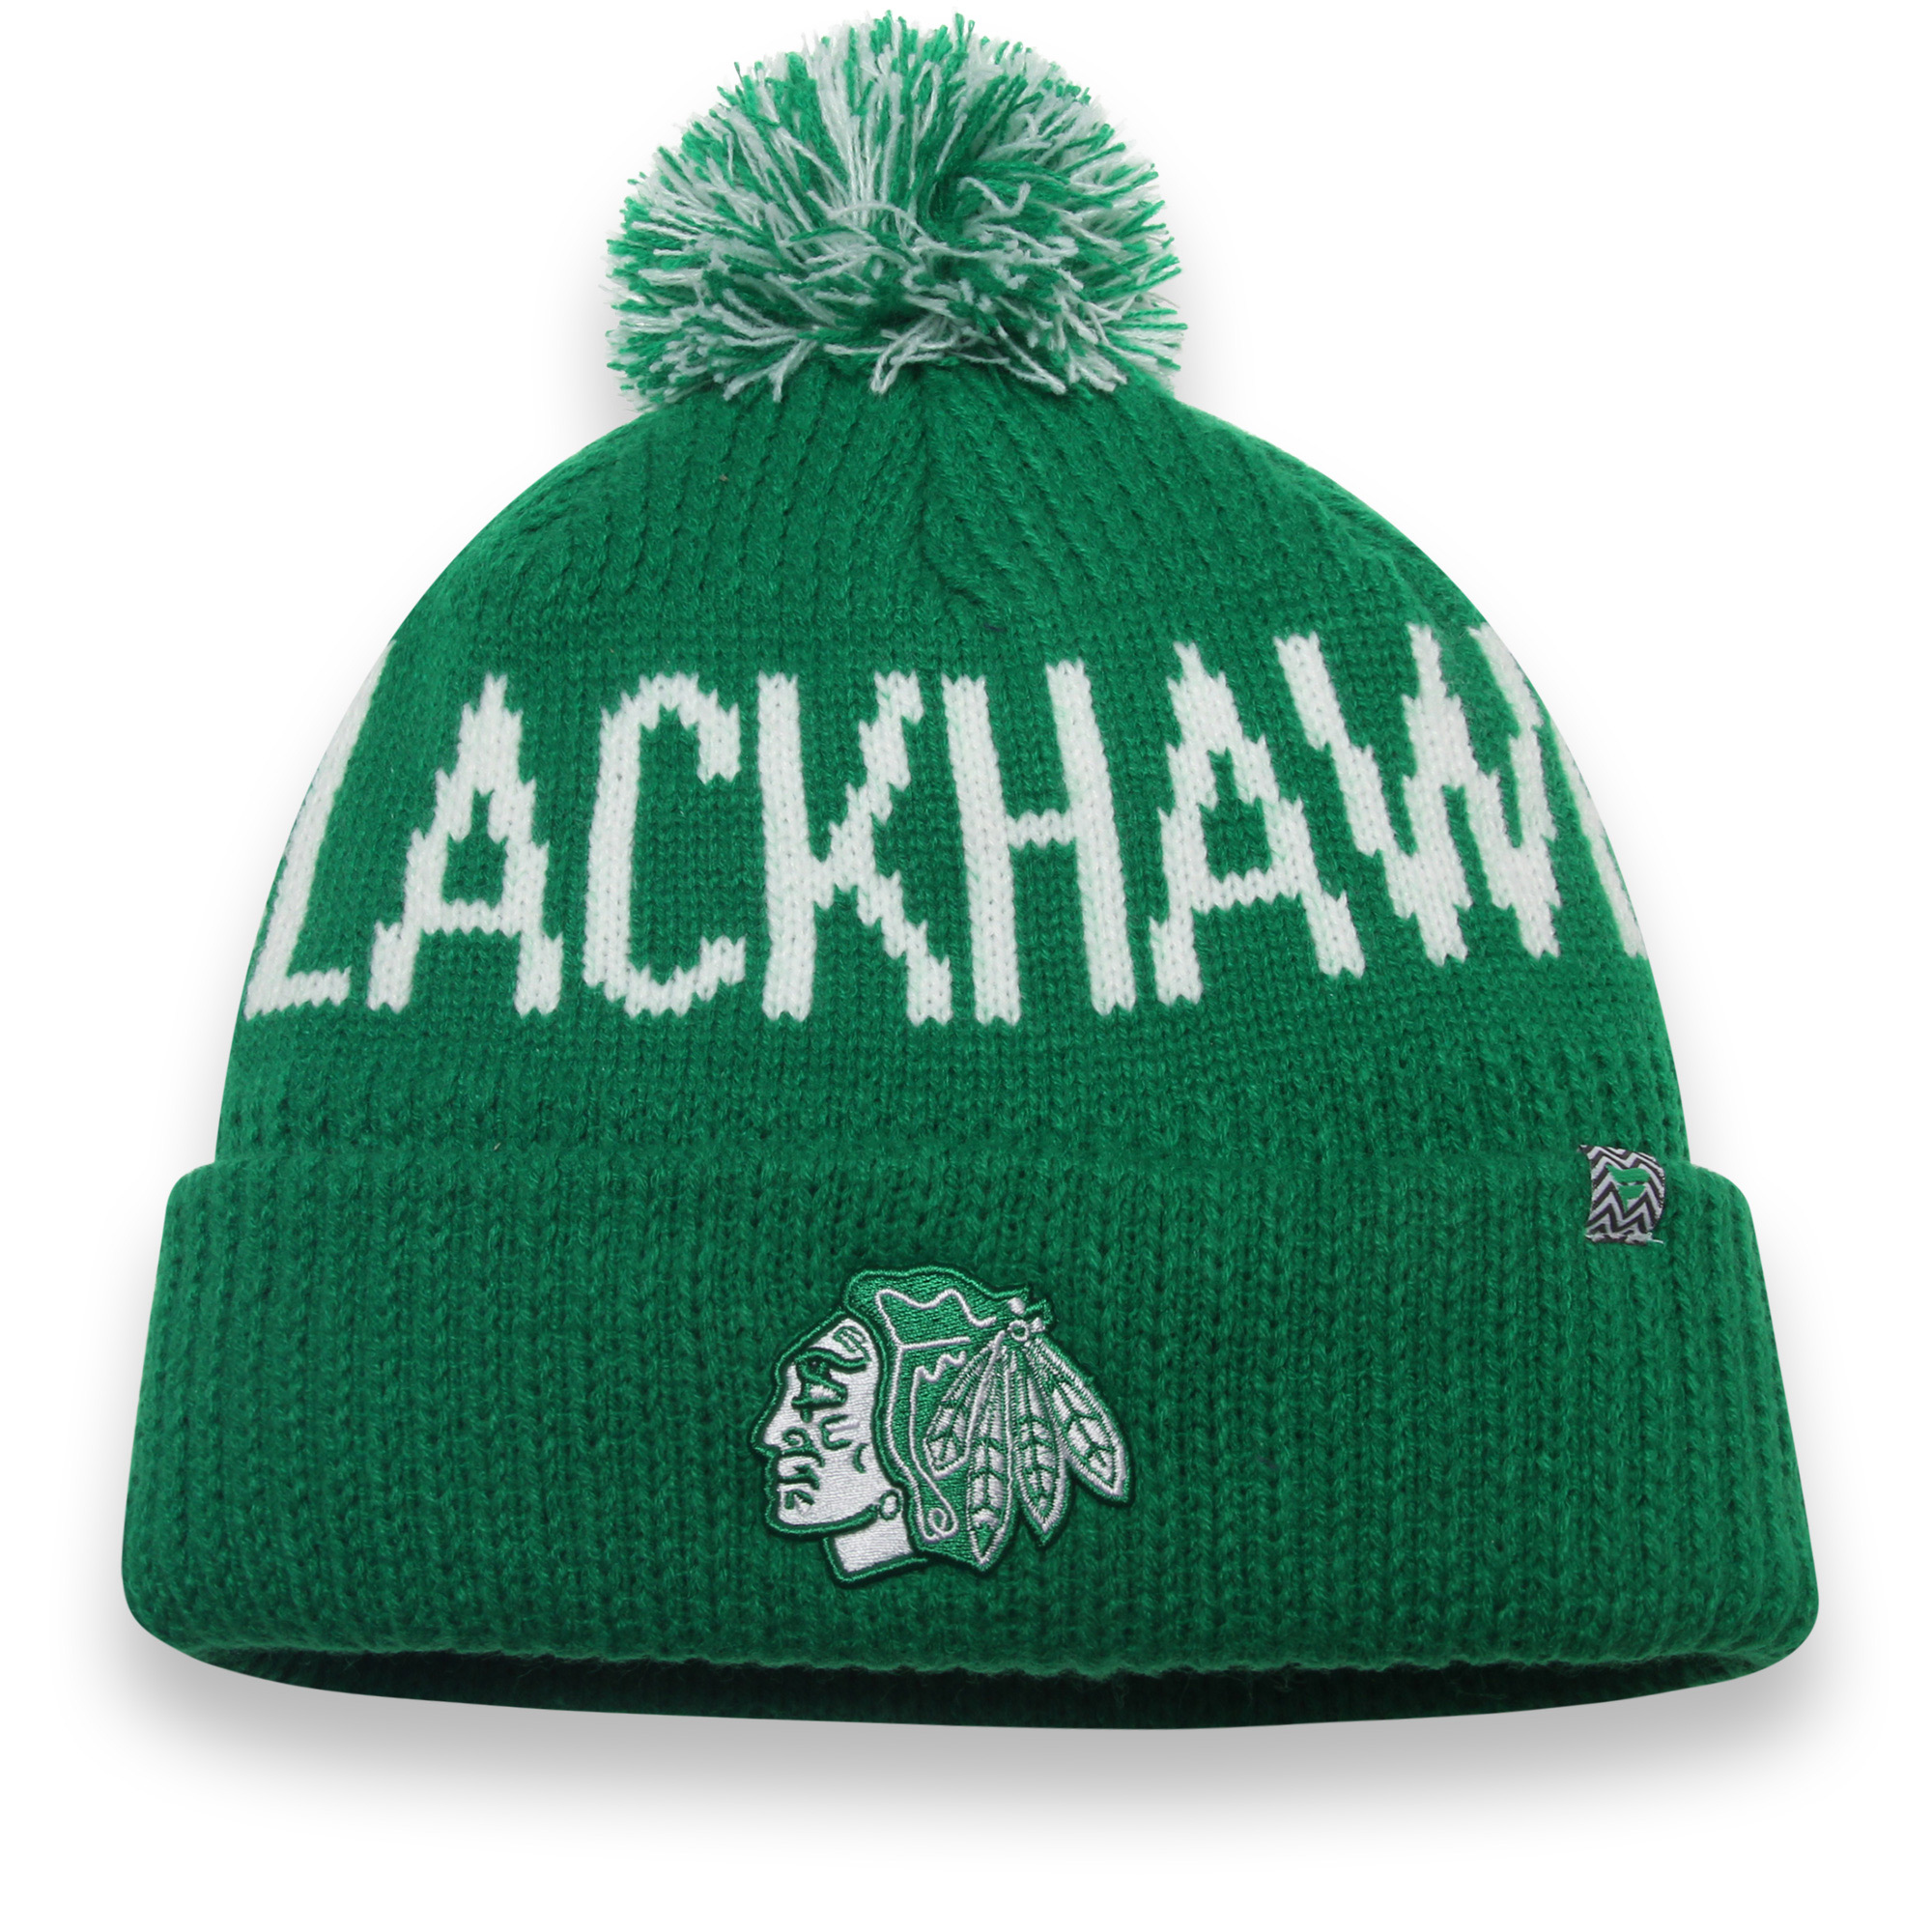 Chicago Blackhawks Fanatics Branded St. Patrick's Day Cuffed Knit Hat with Pom - Green - OSFA